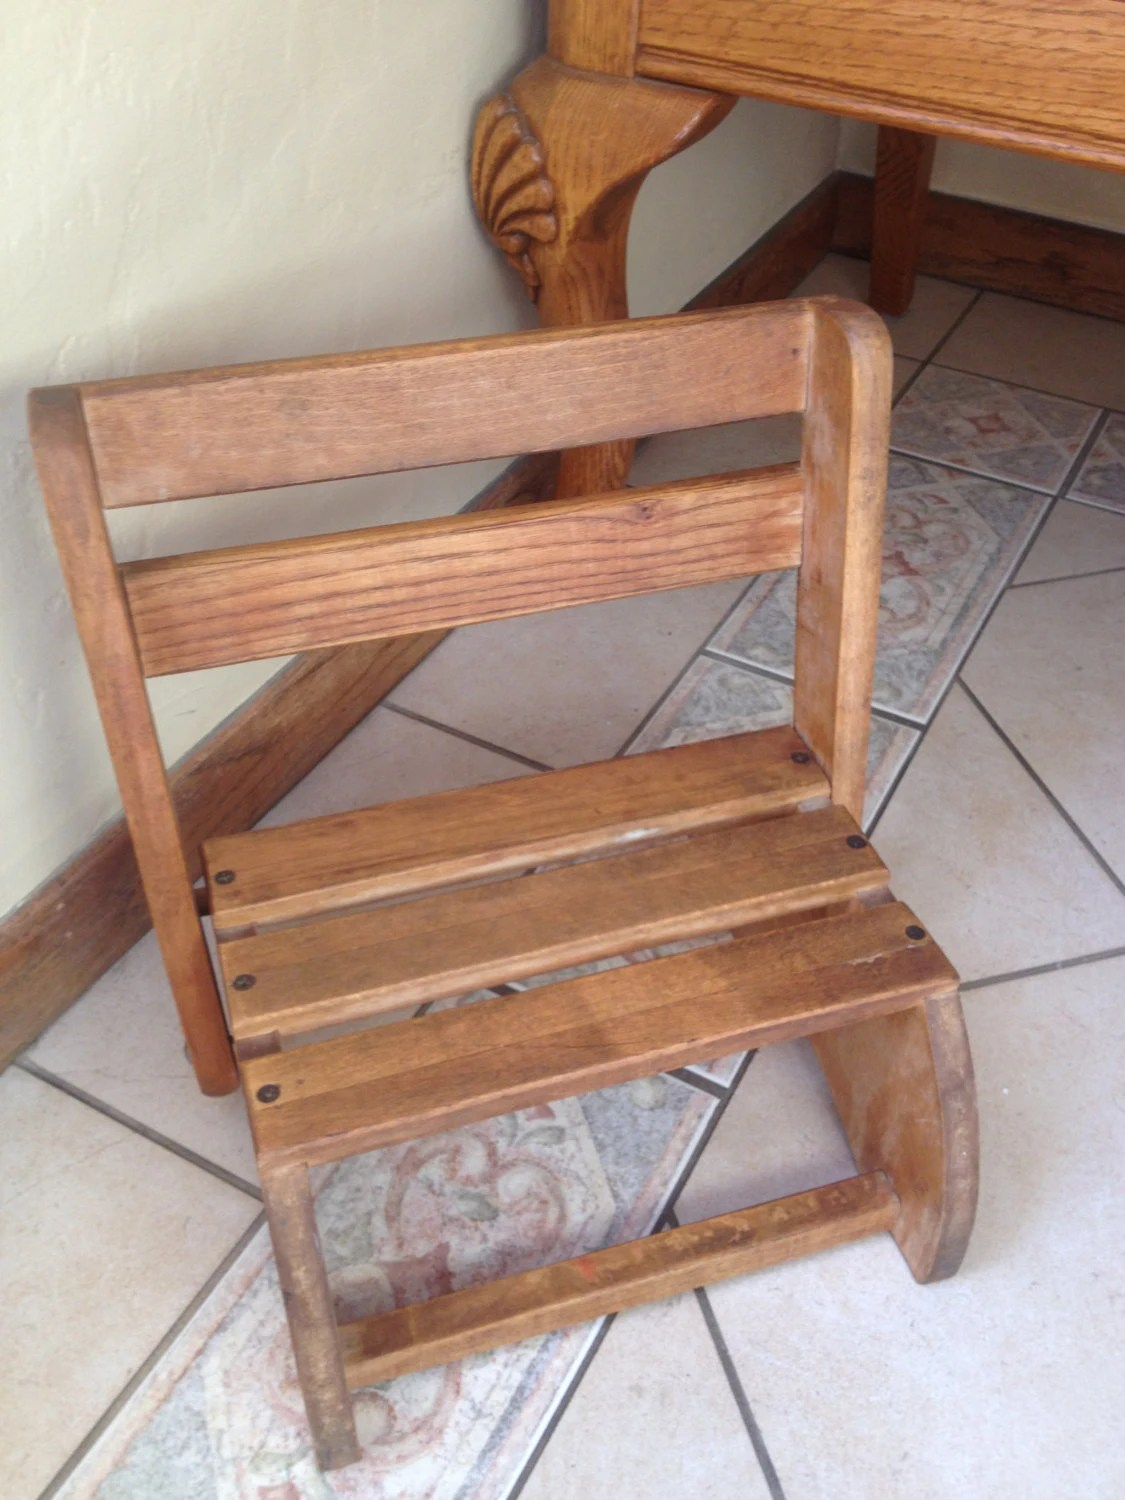 Wooden Step Stool Chair Wonderful Vintage Wooden Child 39s Step Stool Or Chair From